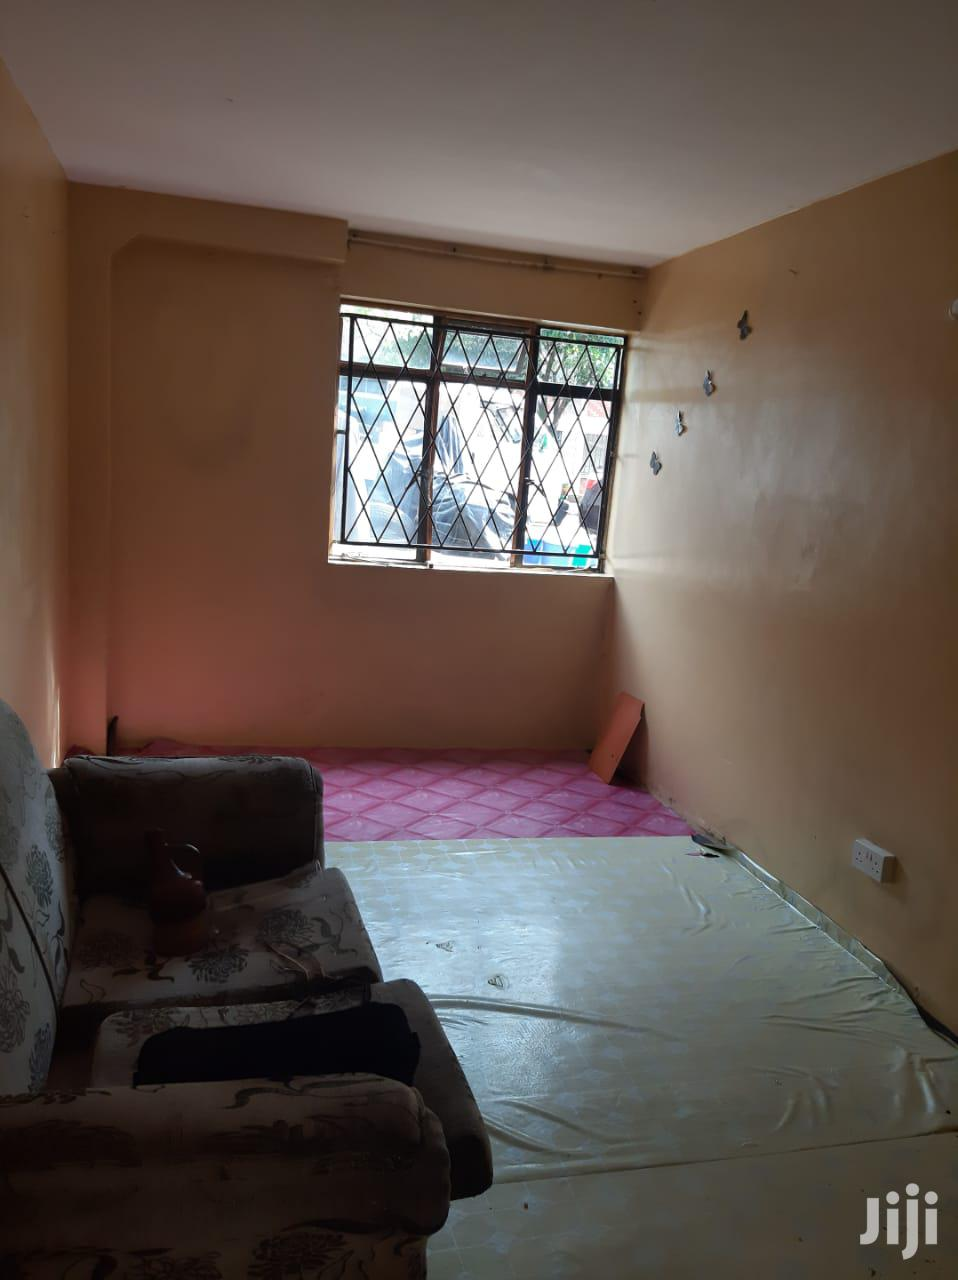 A Spacious and Amazing Servants Quarter to Let in Kilimani Next | Houses & Apartments For Rent for sale in Kilimani, Nairobi, Kenya